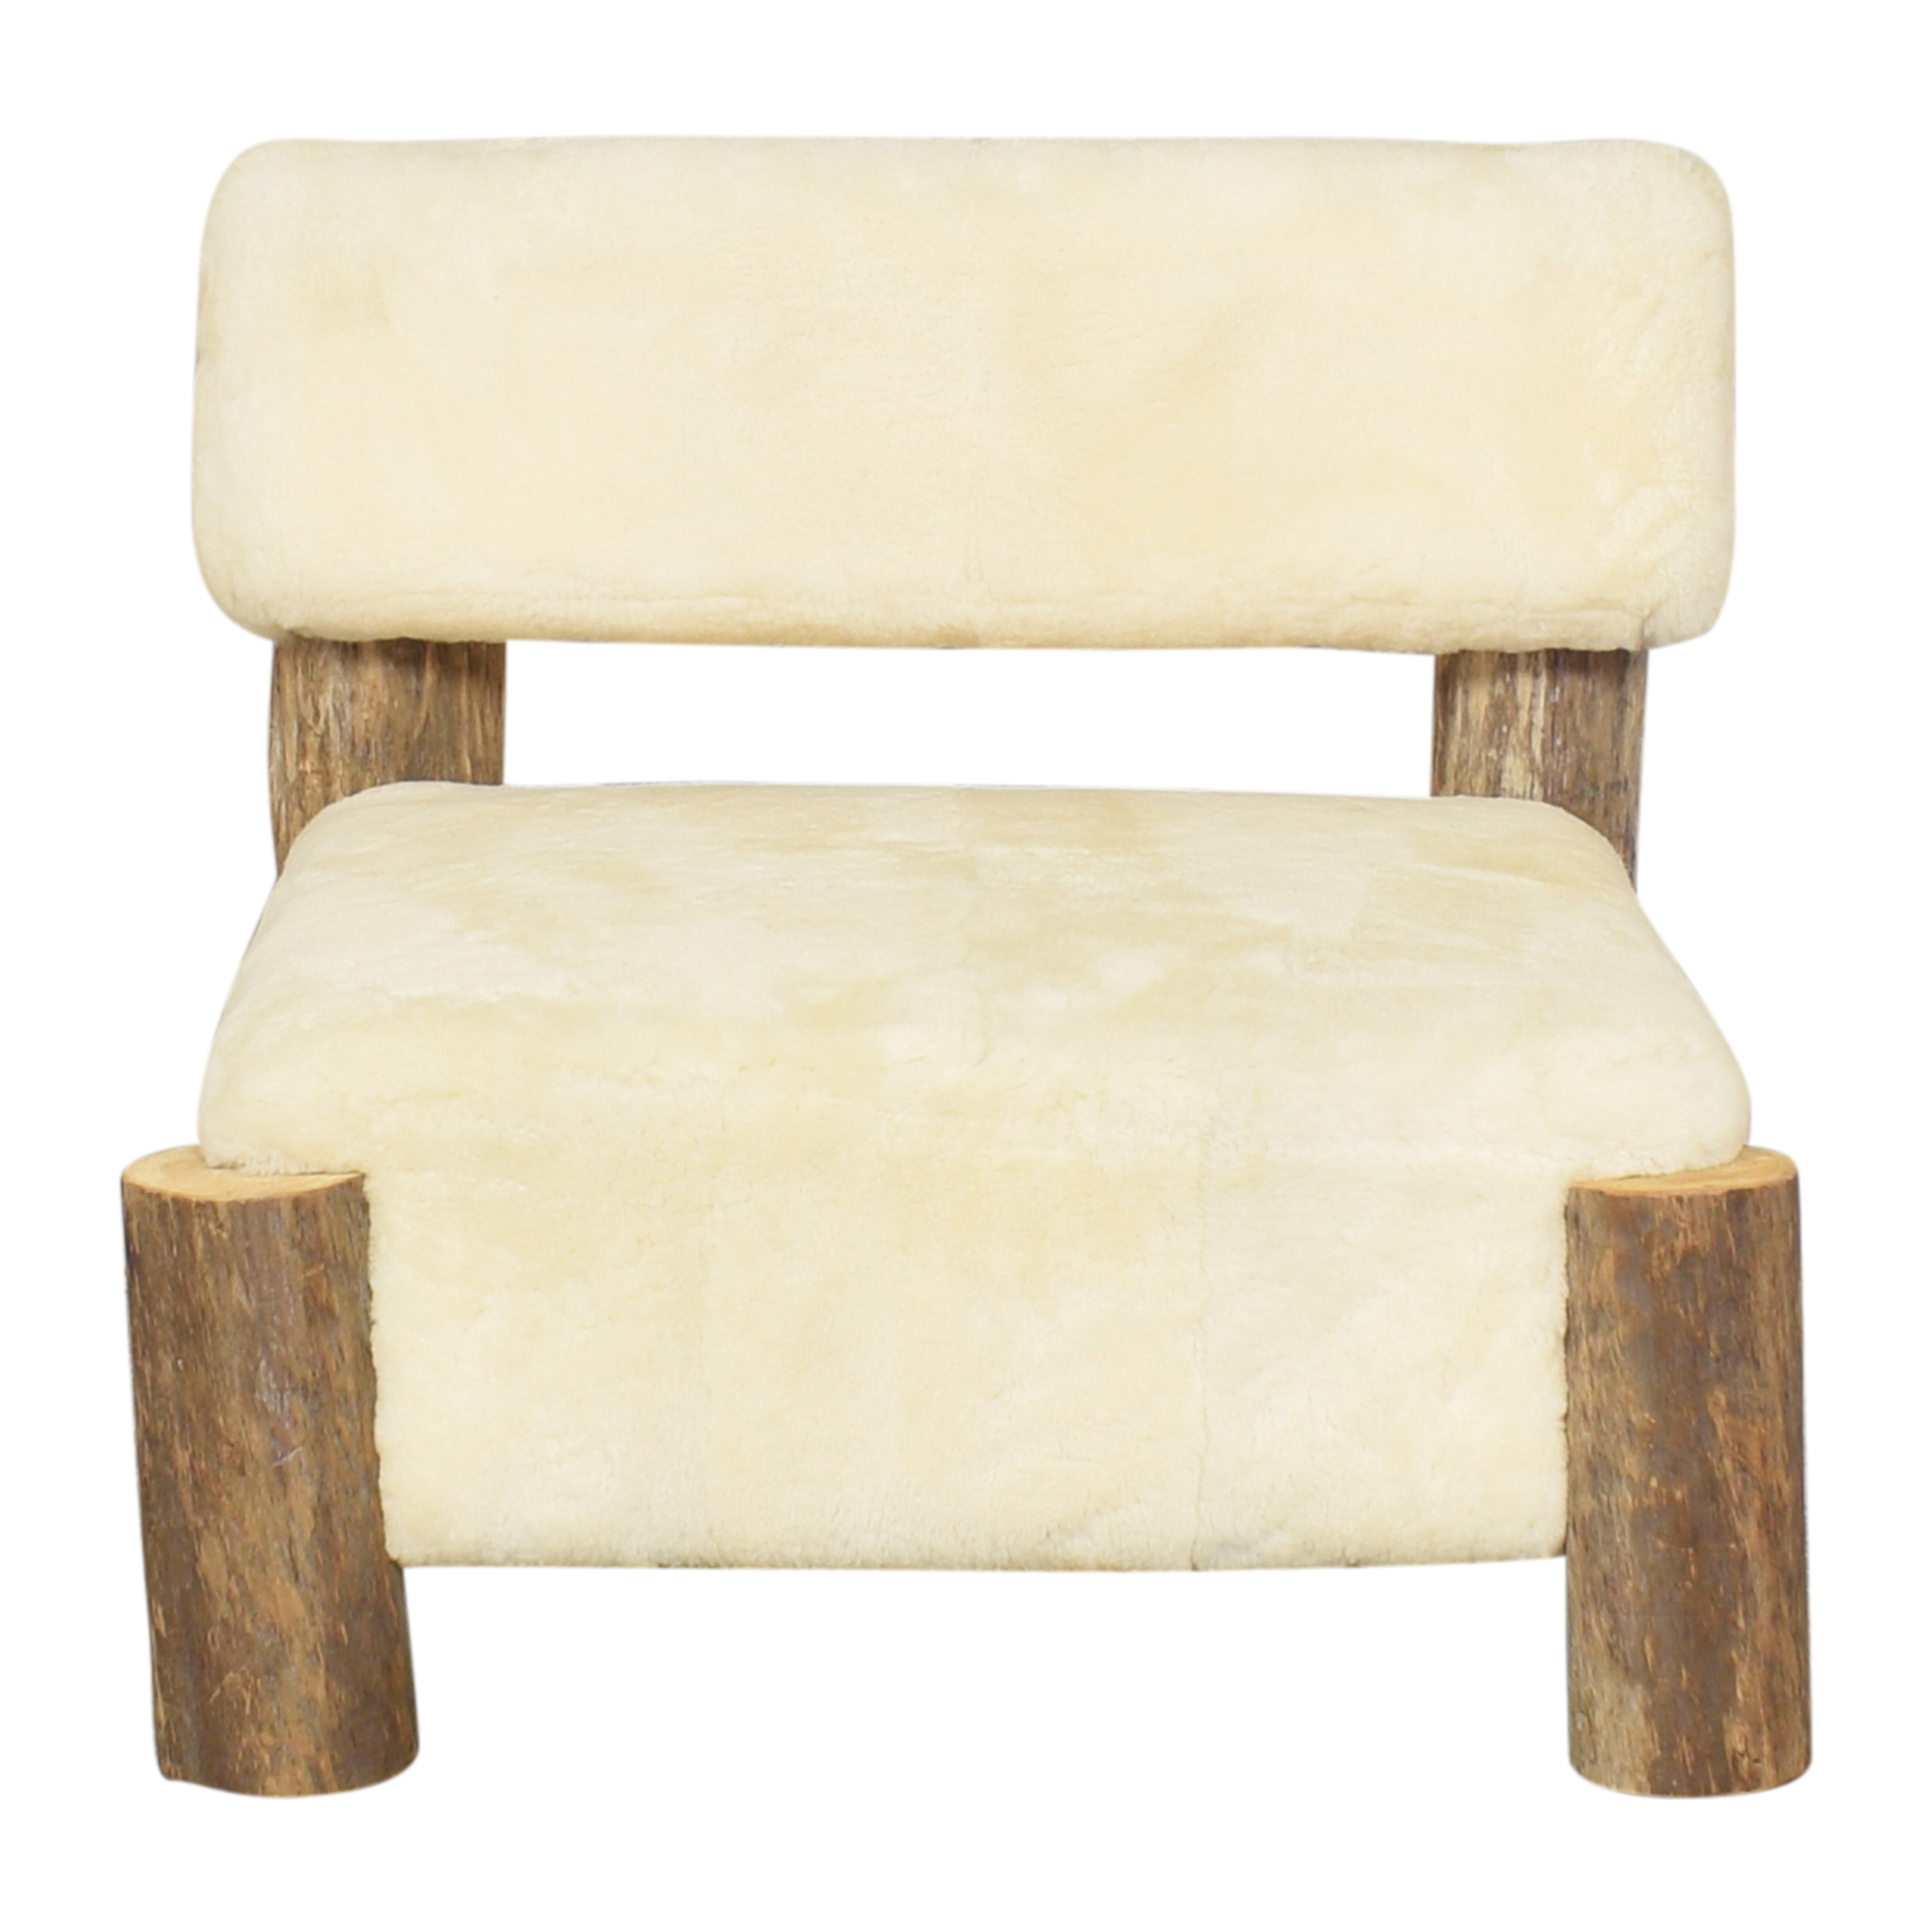 Four Hands Tsalagi Slipper Chair / Chairs